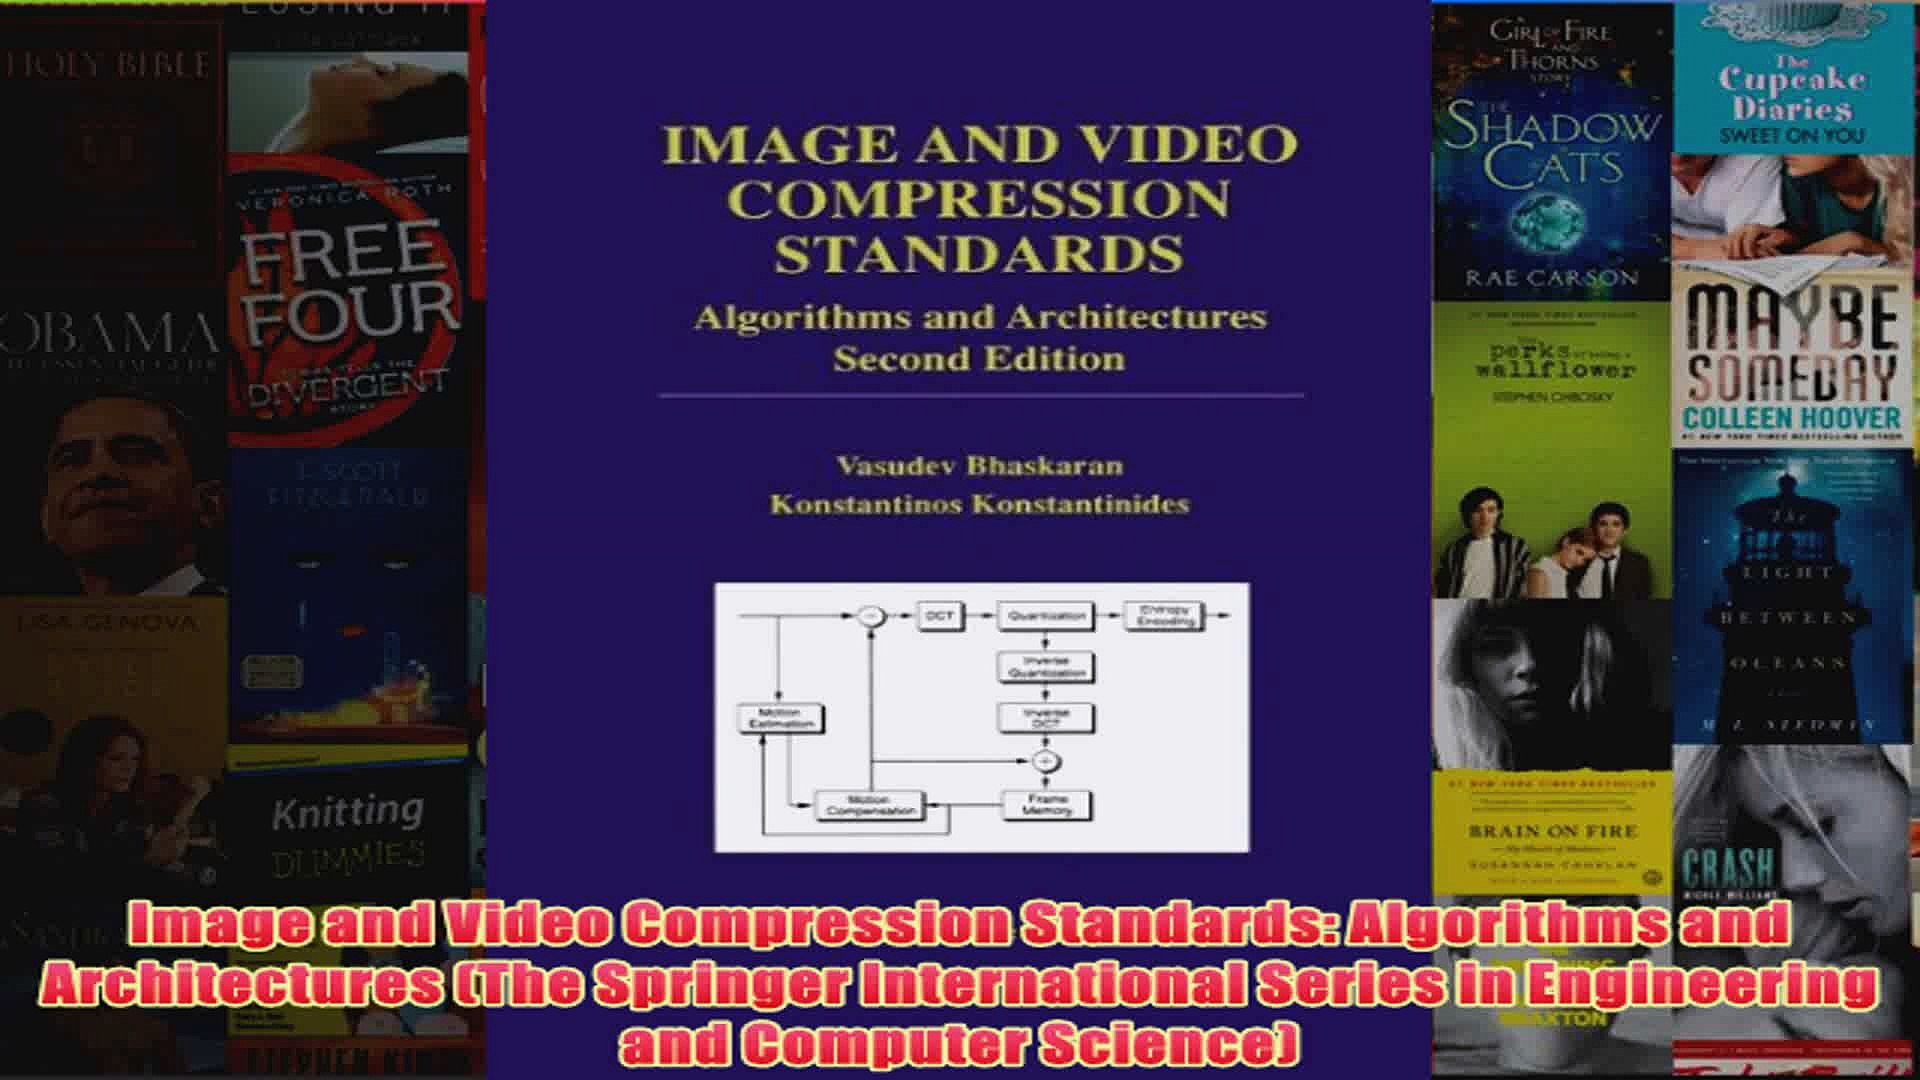 Algorithms and Architectures Image and Video Compression Standards